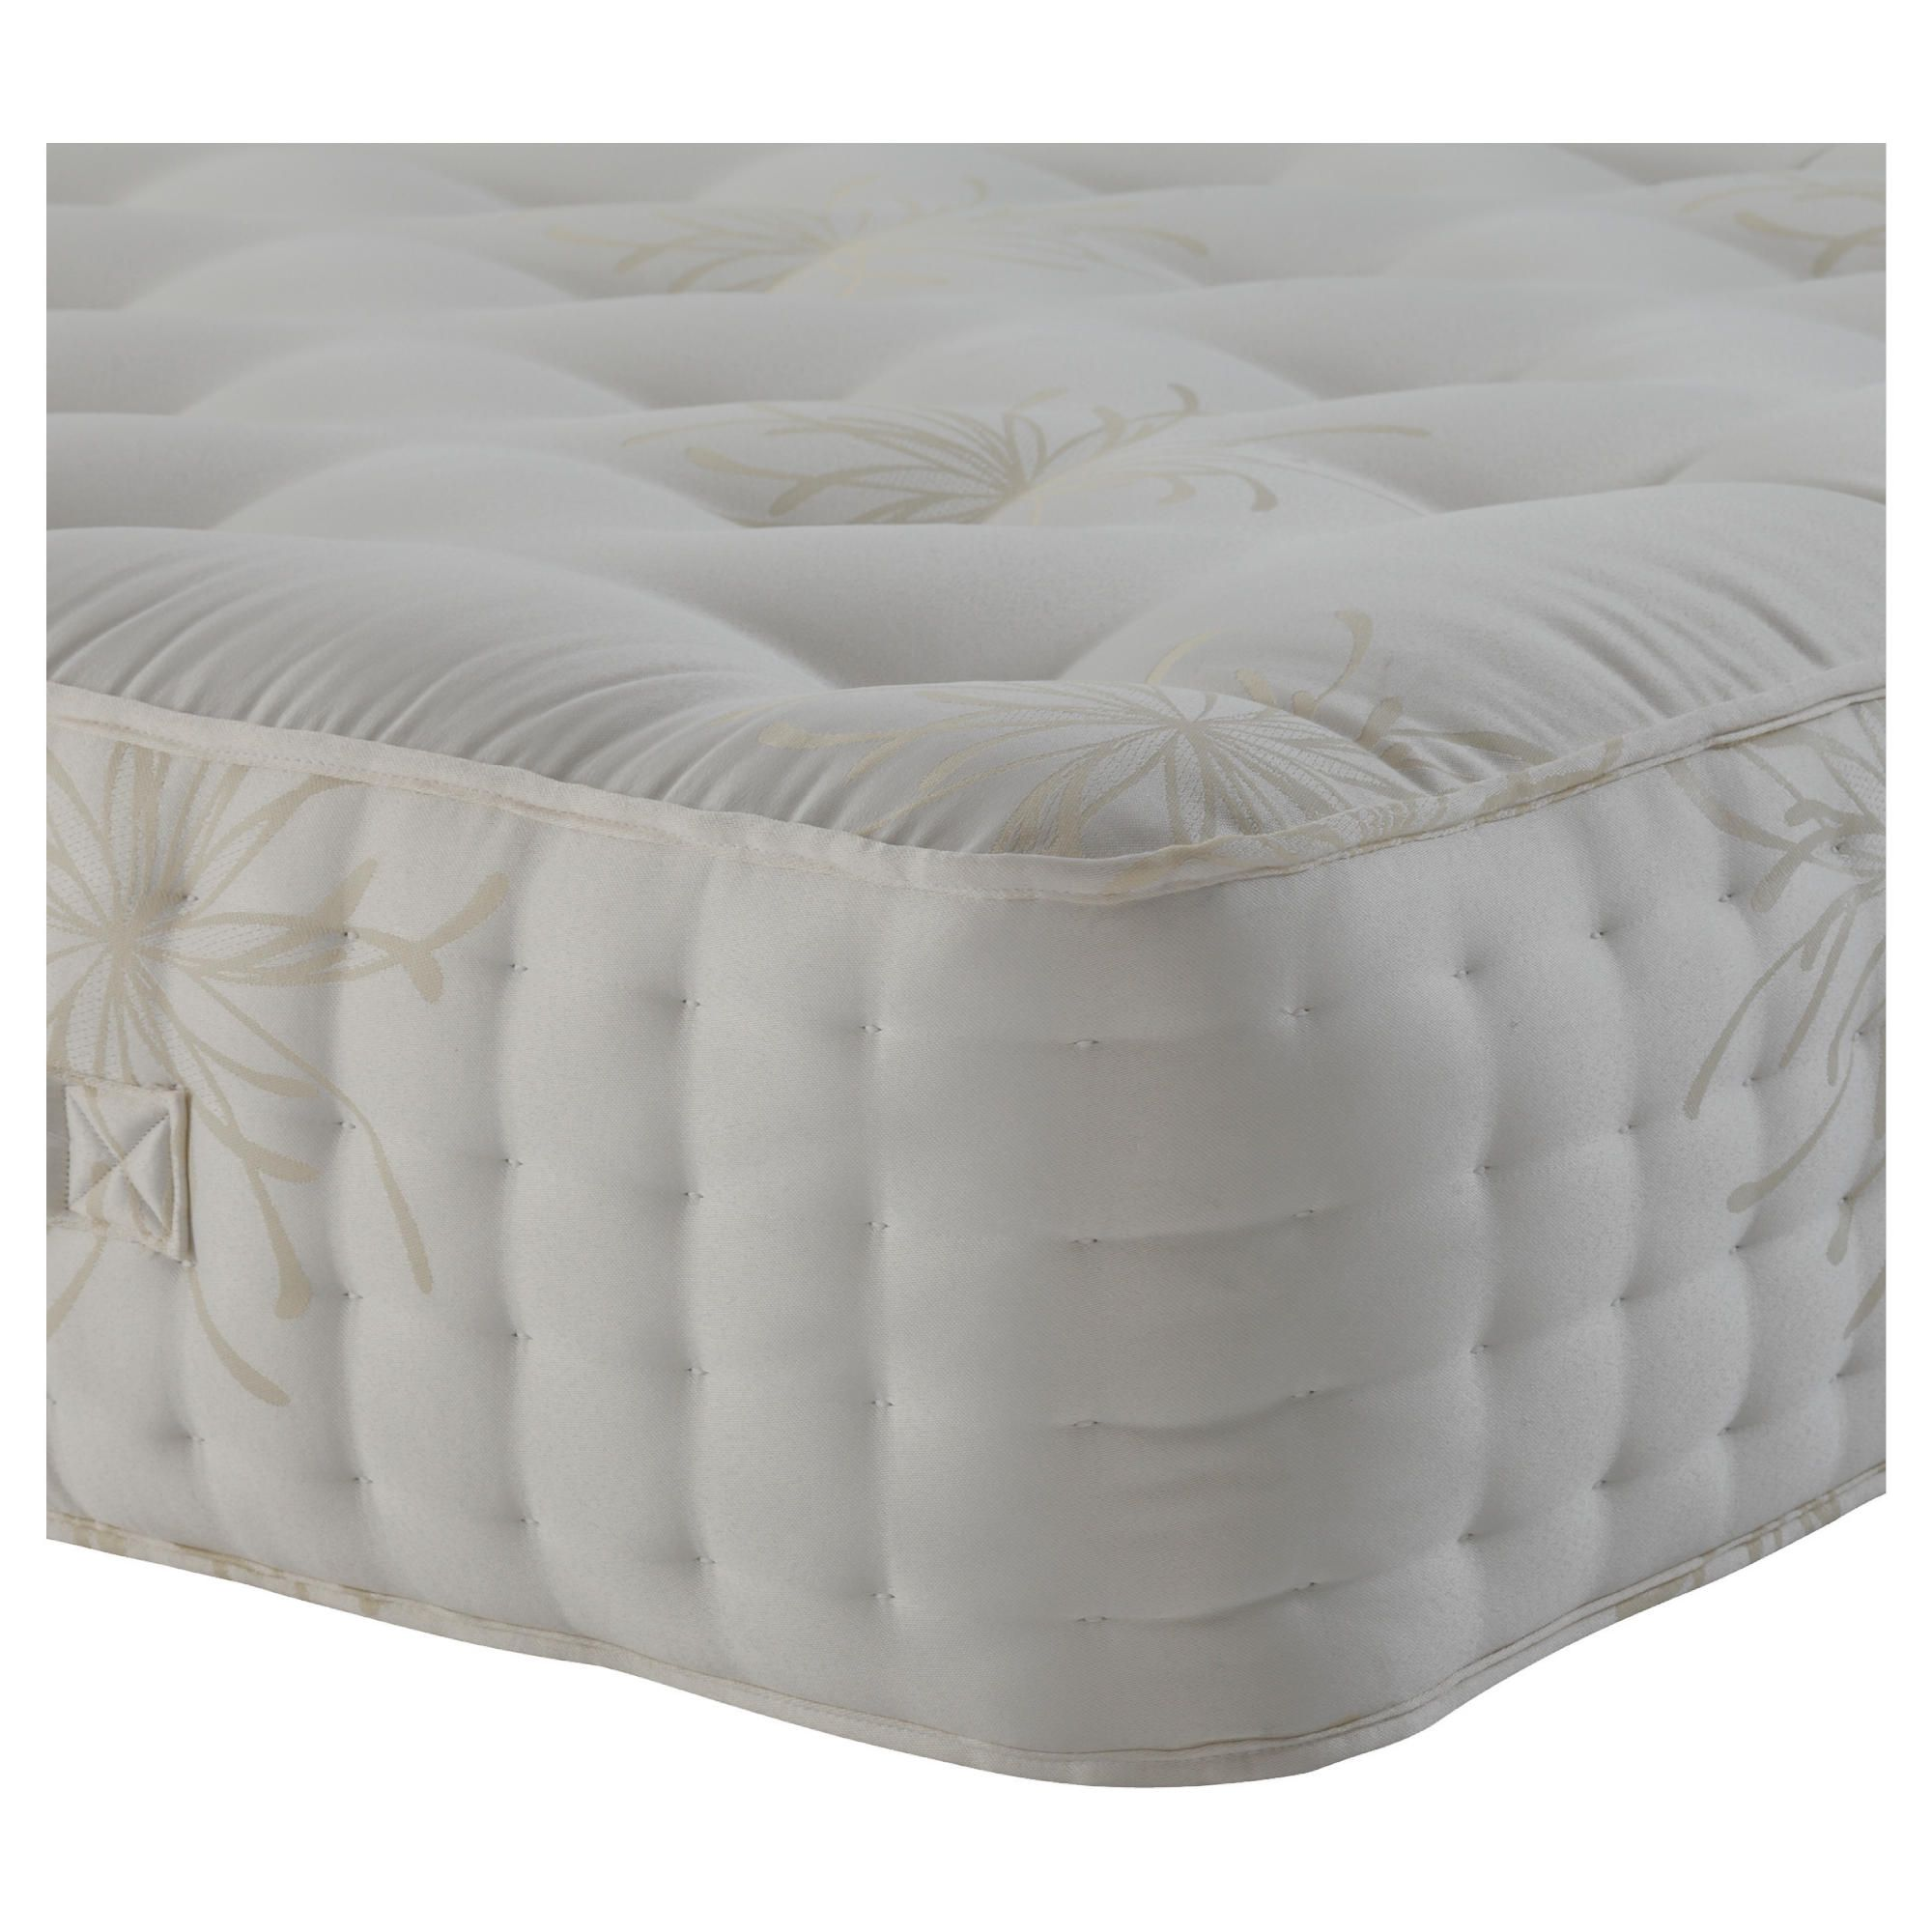 Relyon Luxury 1800 Single Mattress at Tescos Direct